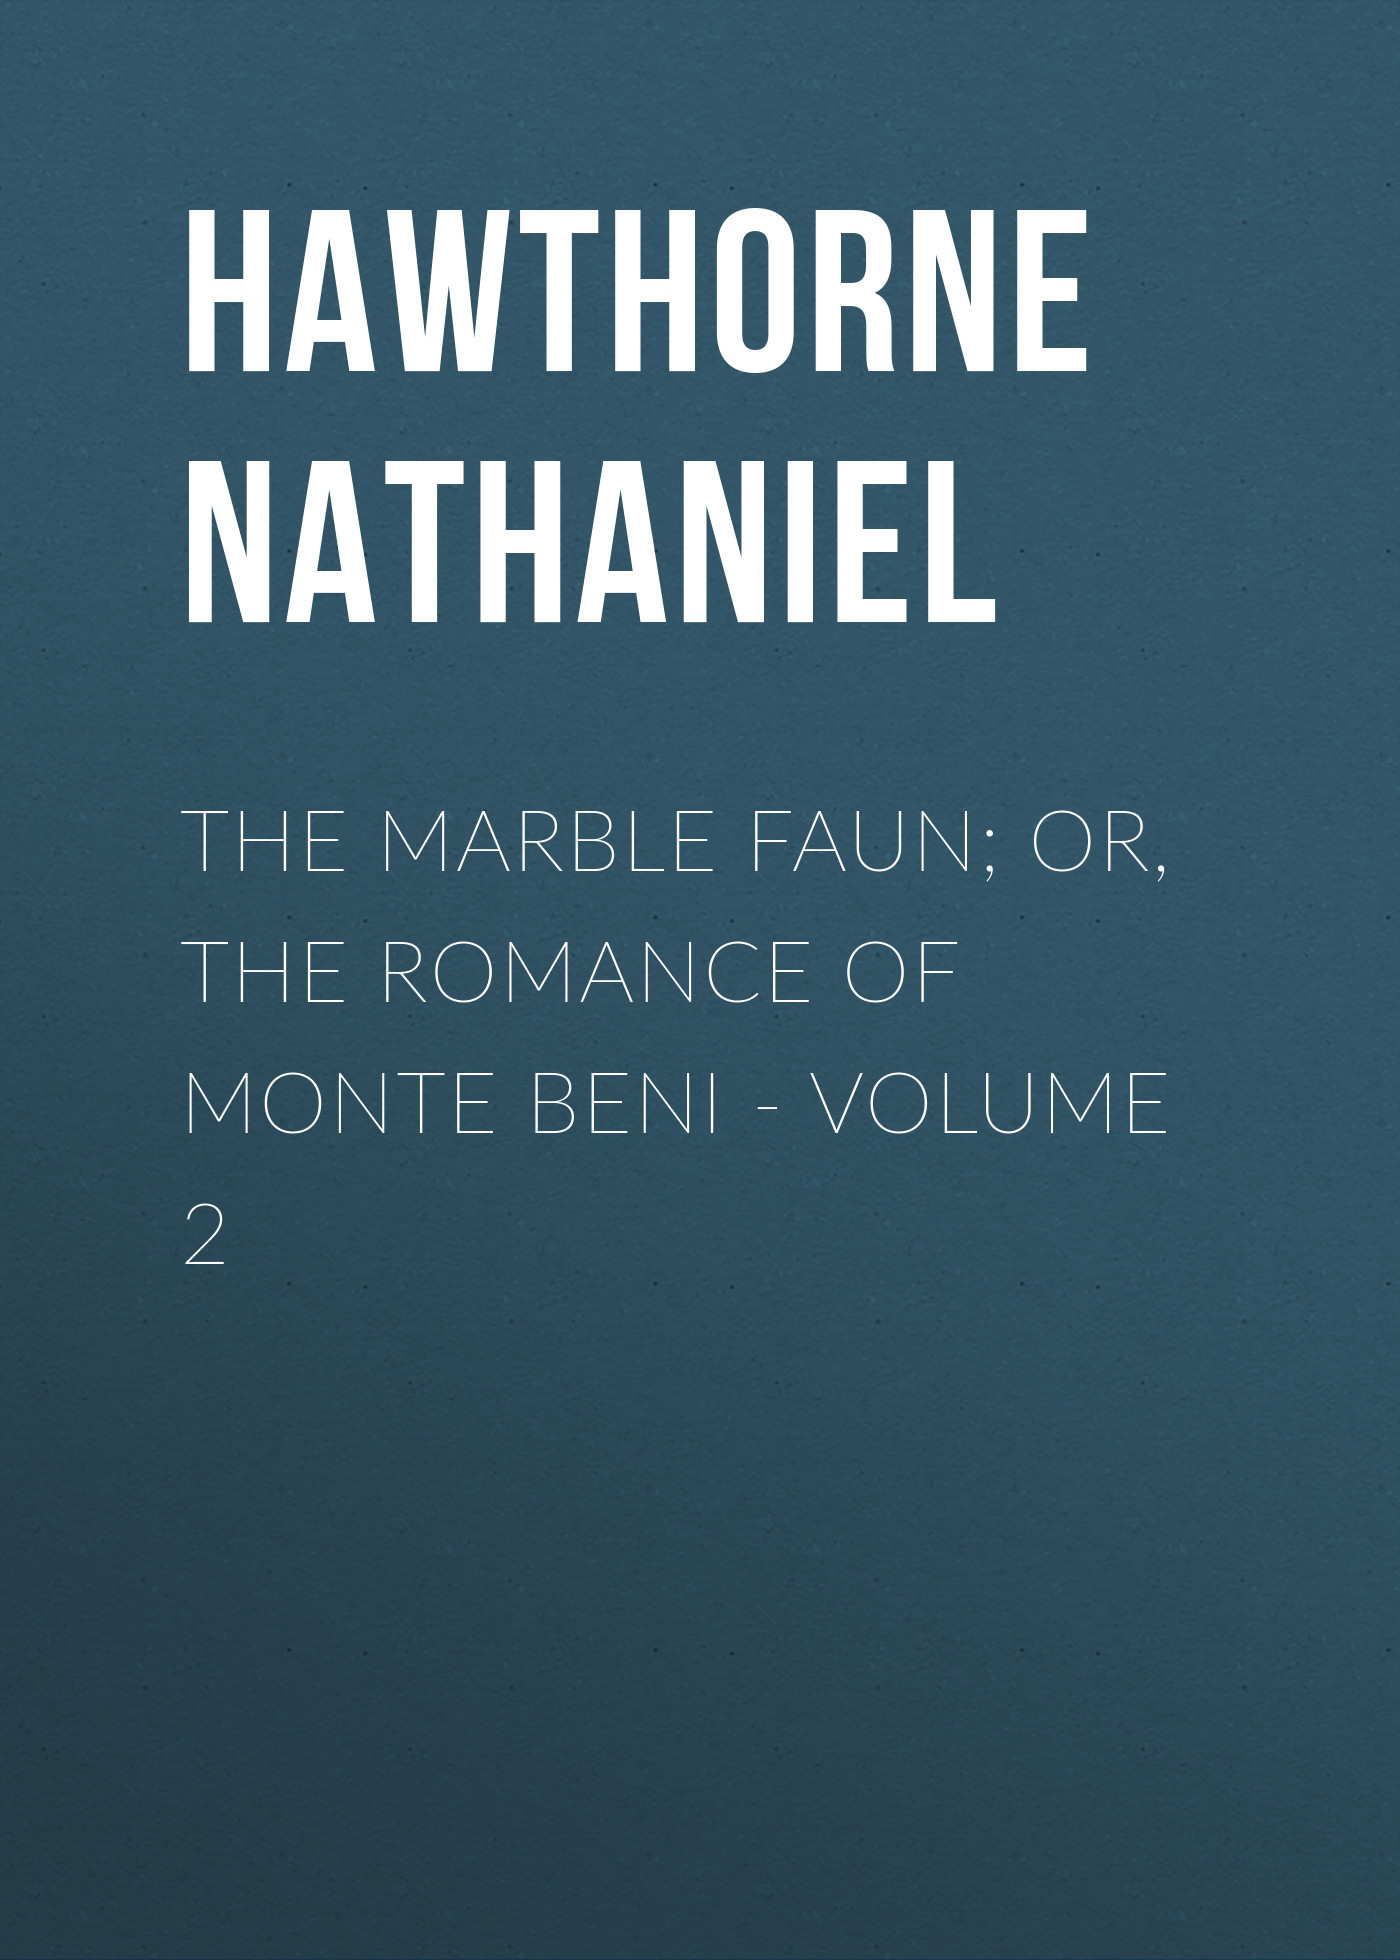 Hawthorne Nathaniel The Marble Faun; Or, The Romance of Monte Beni - Volume 2 hawthorne nathaniel the marble faun or the romance of monte beni volume 2